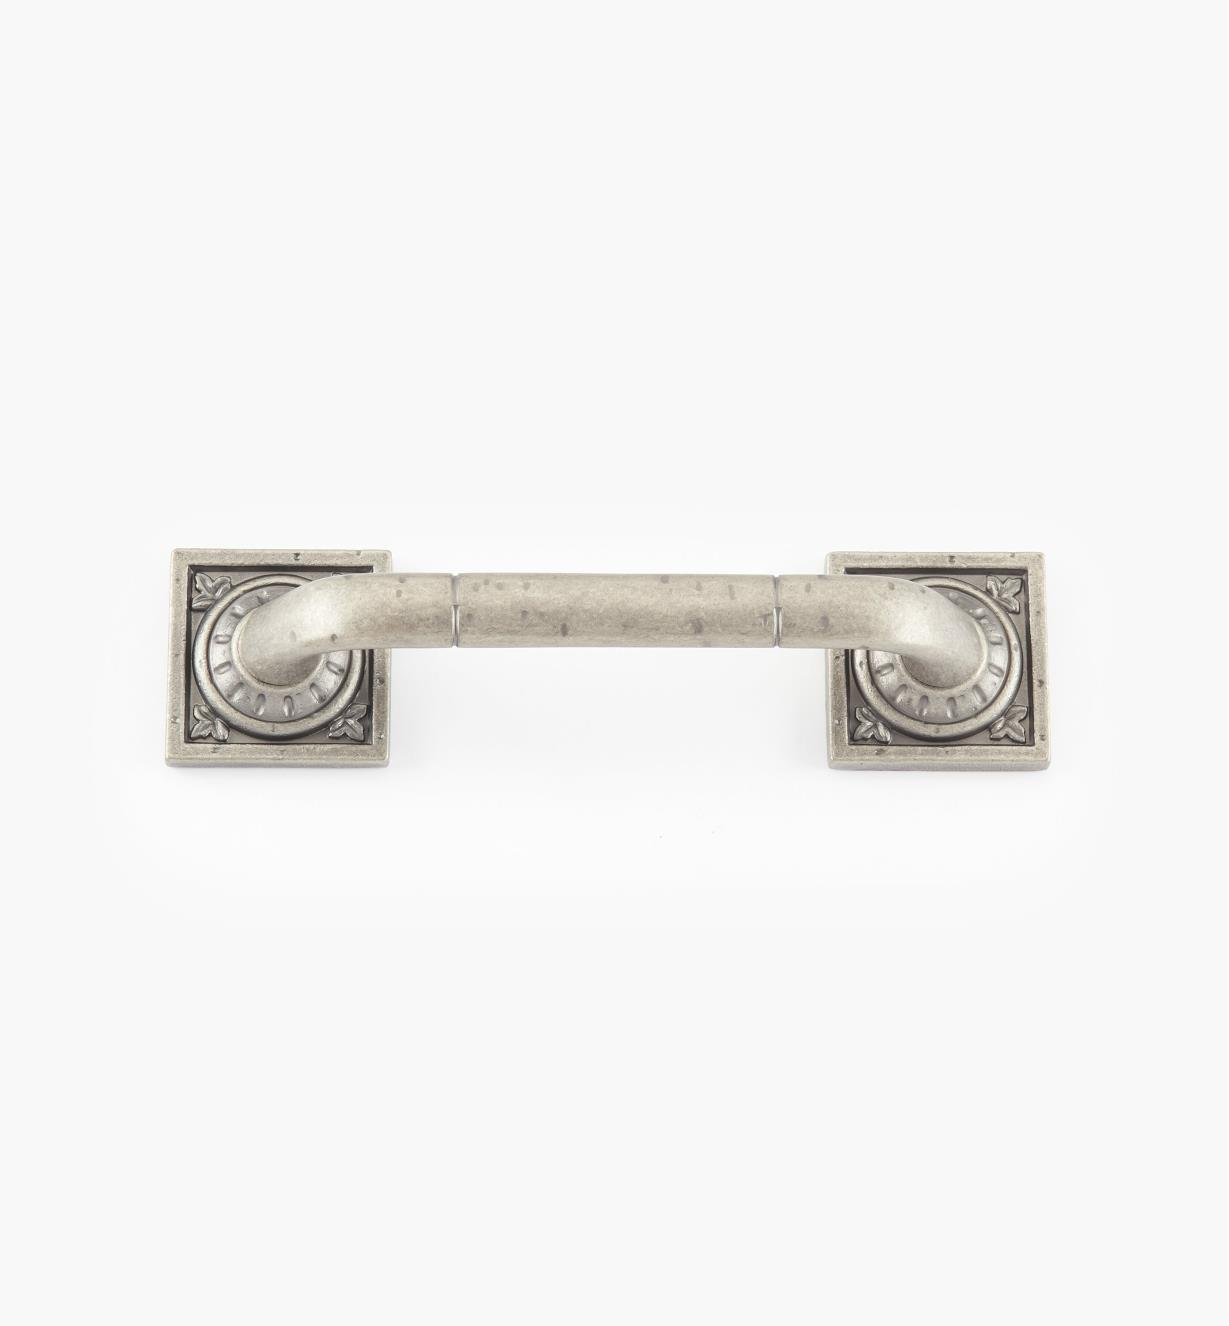 "02A2631 - Ambrosia 5"" Weathered Nickel Square Handle"